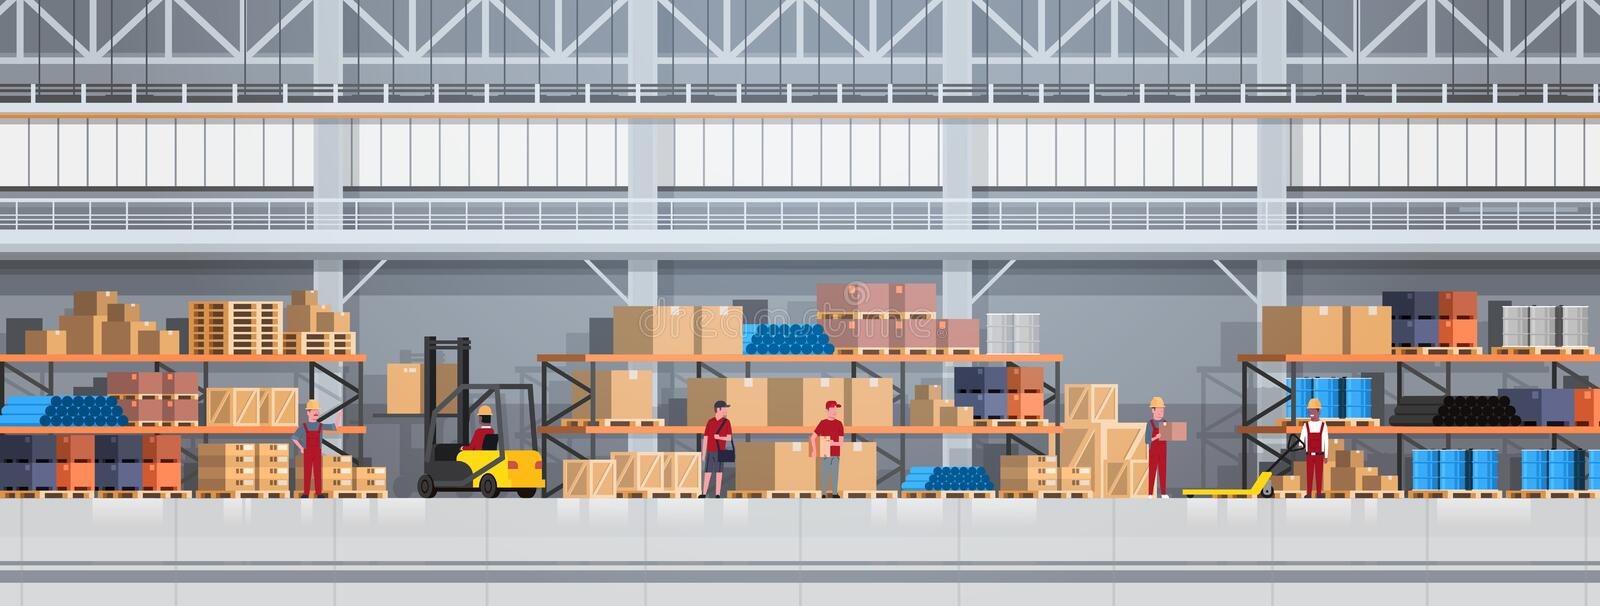 People Working In Warehouse Lifting Box With Forklift. Logistic Delivery Service Concept Horizontal Banner vector illustration